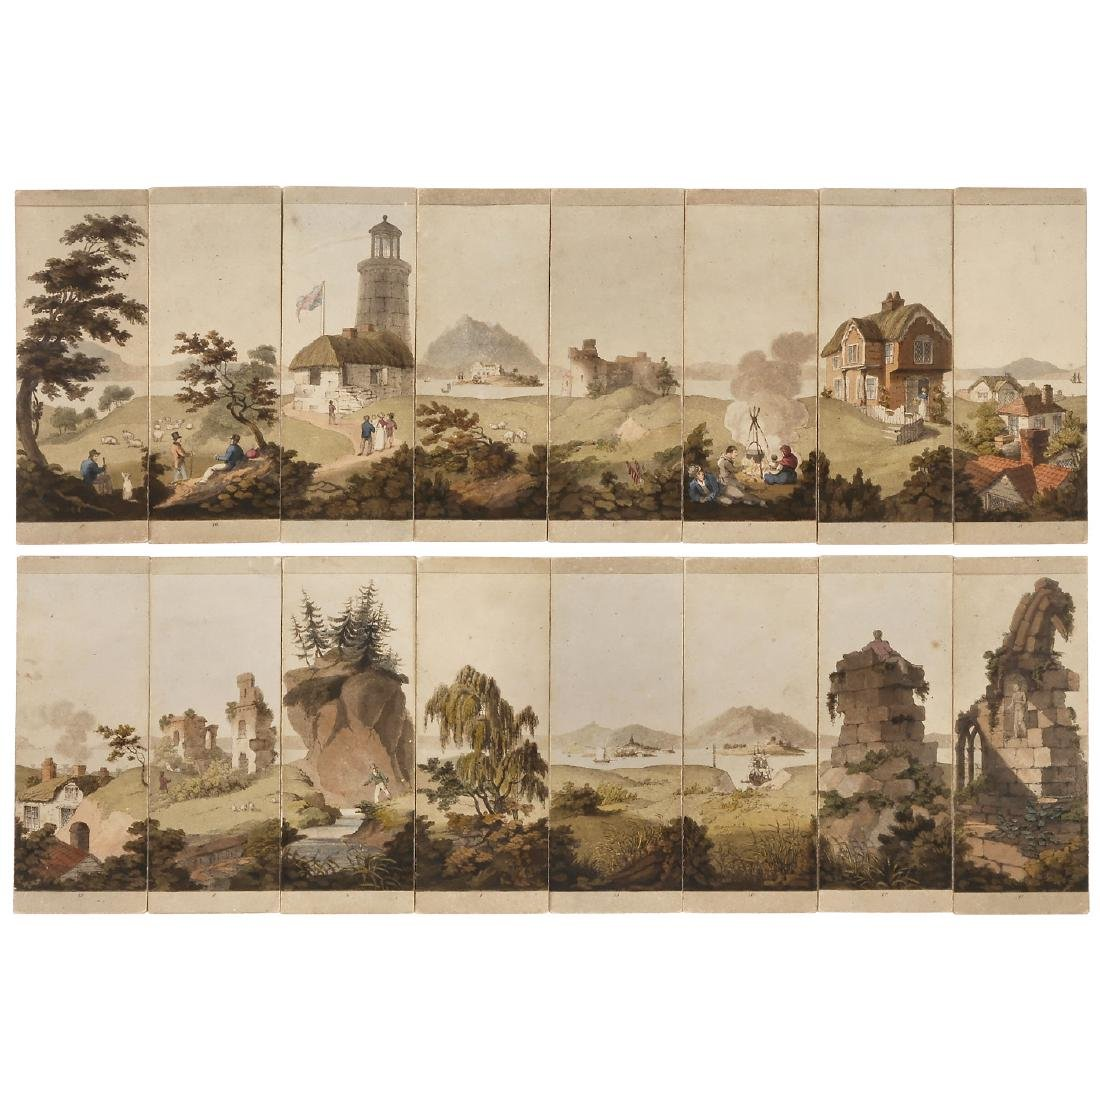 Myriorama Sectional Panorama, c. 1820